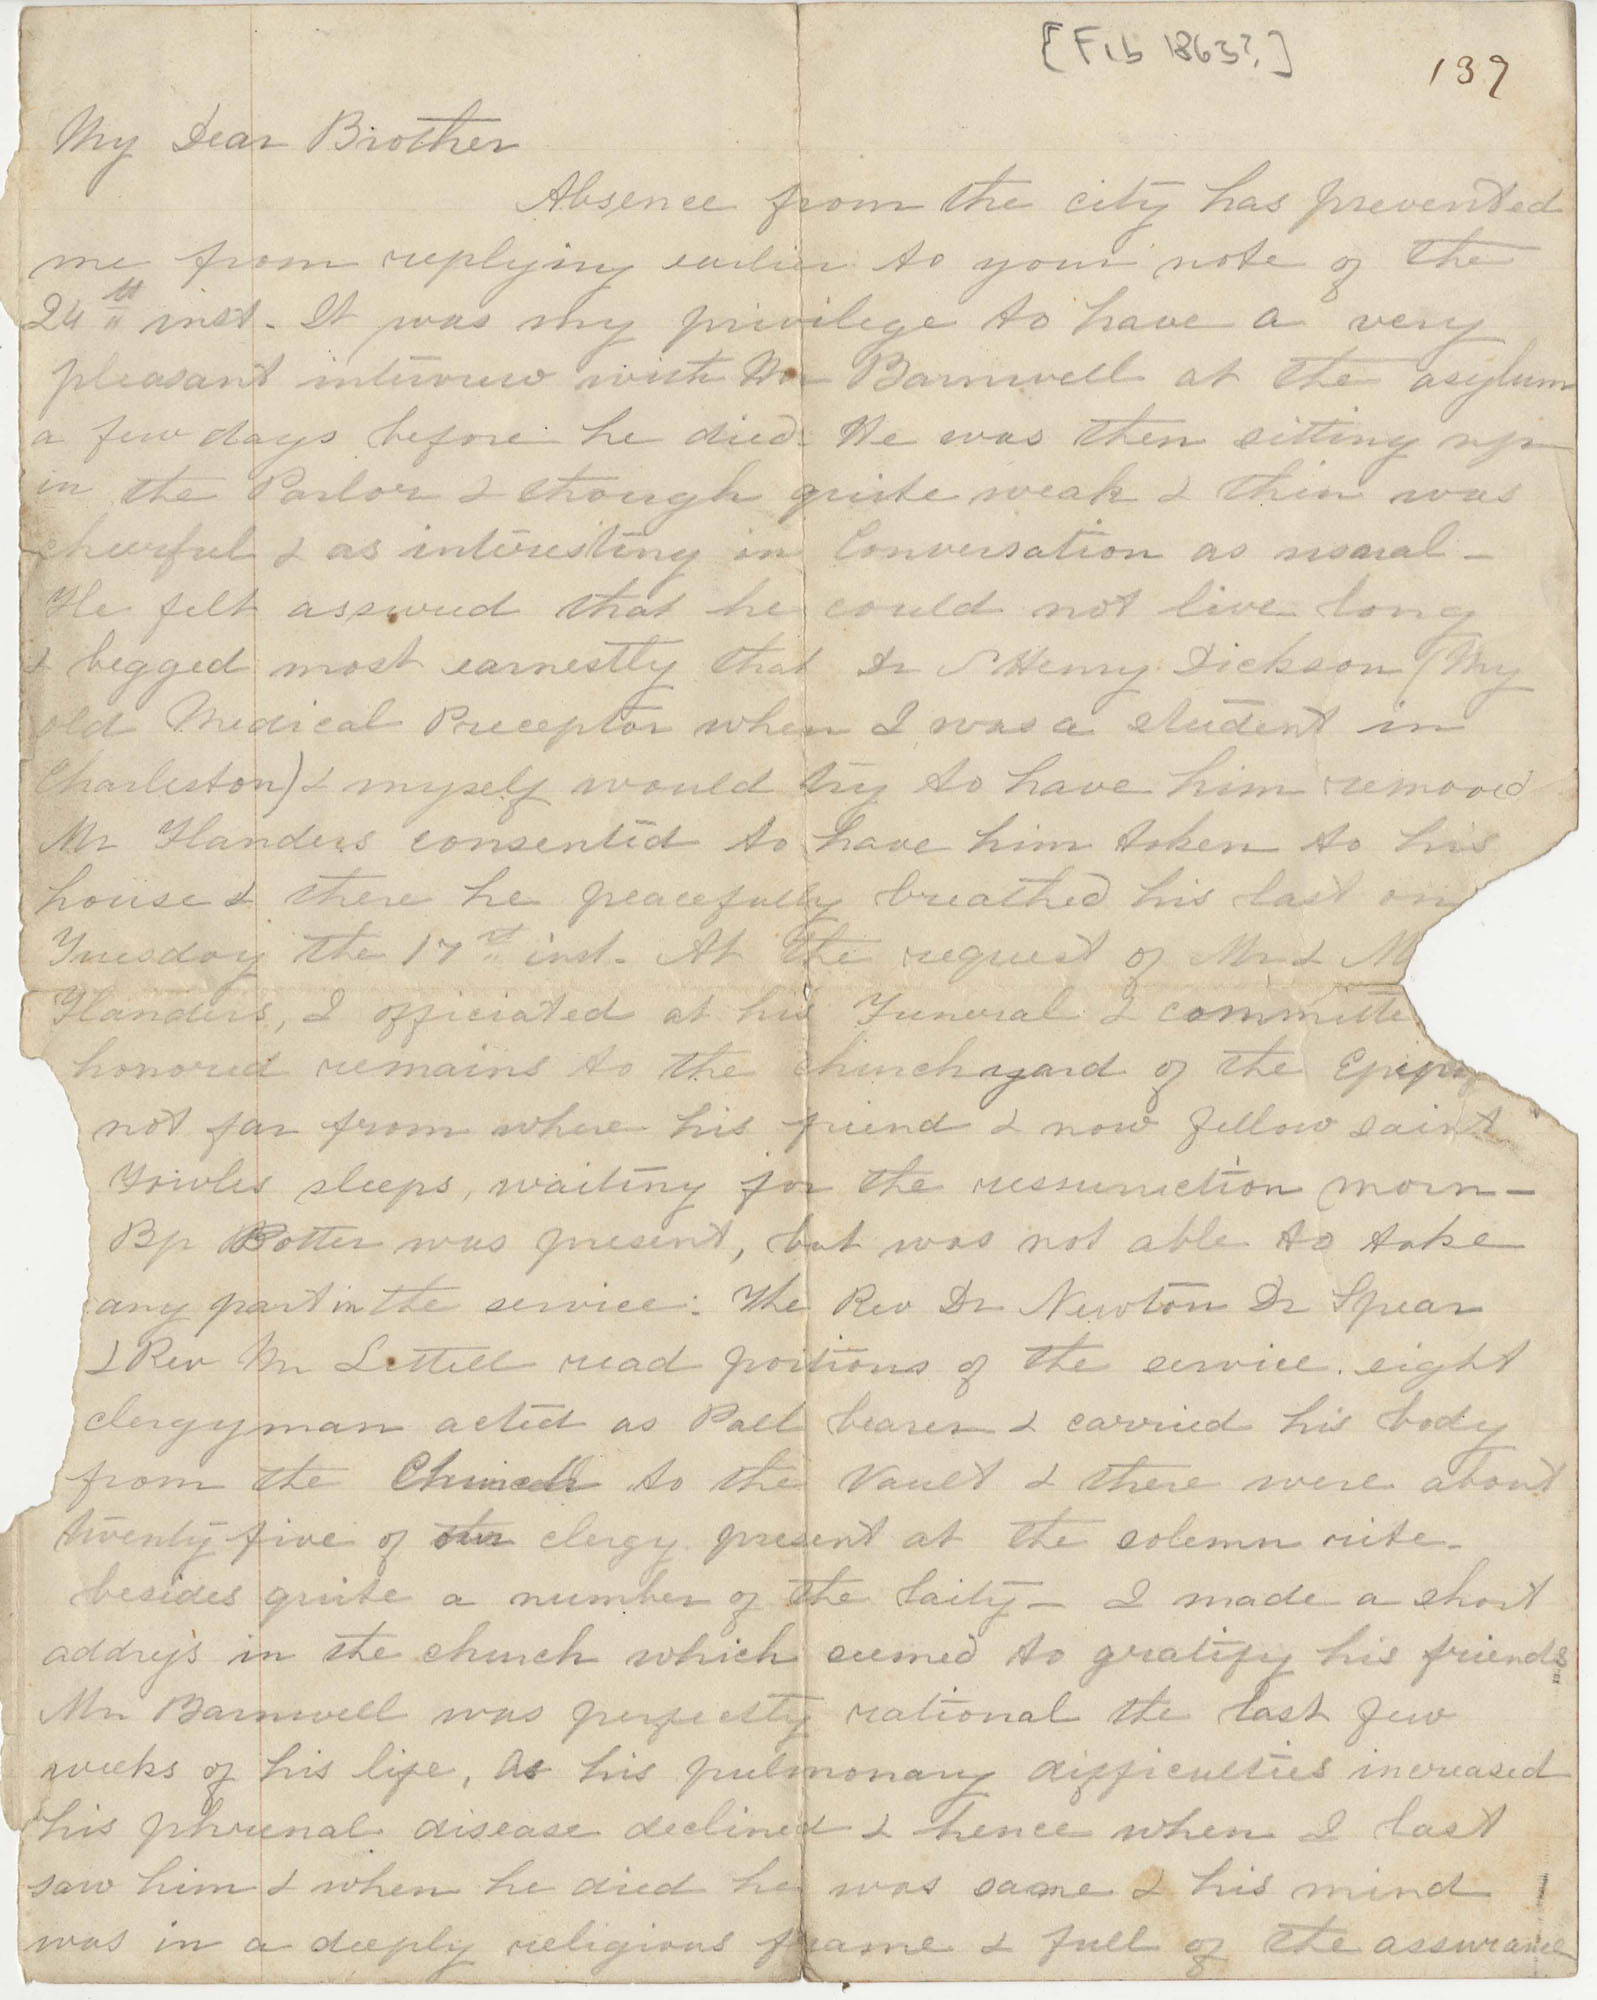 210.  William Bacon Stevens to Robert Woodward Barnwell -- 1863